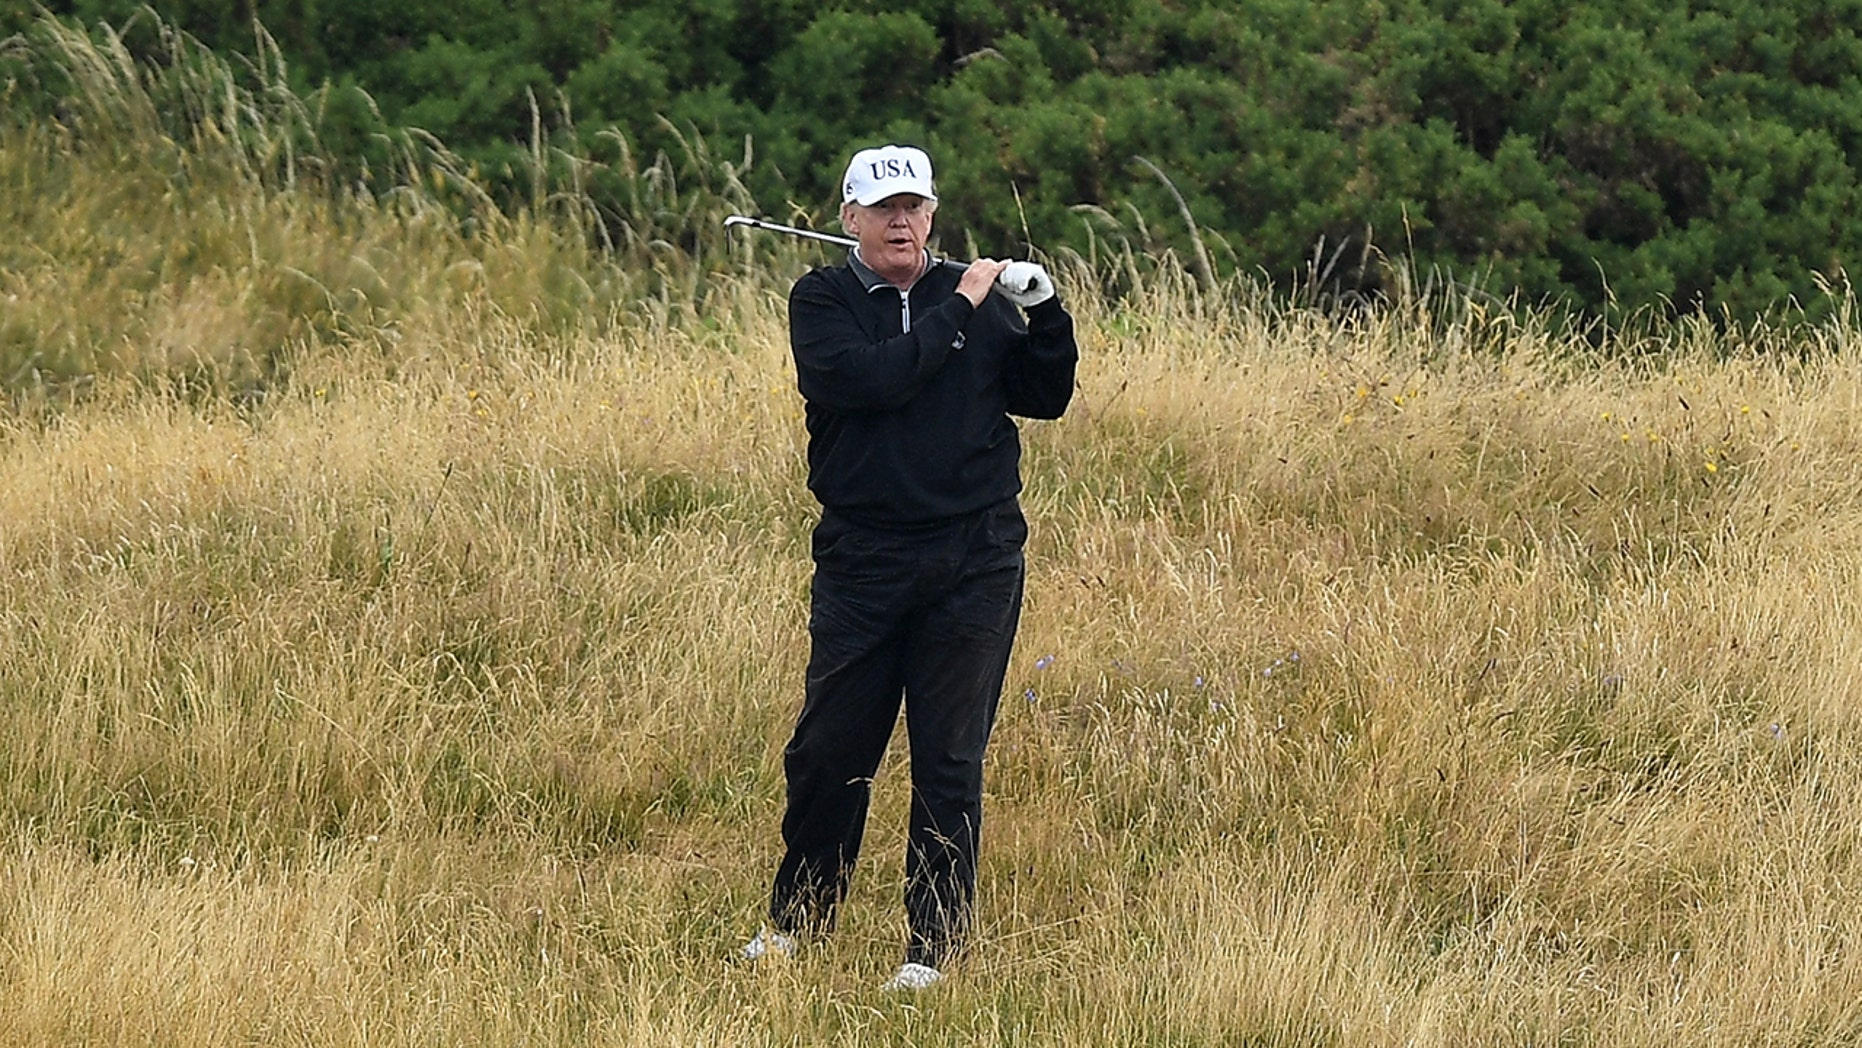 TURNBERRY, SCOTLAND - JULY 15: U.S. President Donald Trump plays a turn of golf during Trump Turnberry Luxury Collection Resort during a U.S. President's initial central revisit to a United Kingdom on Jul 15, 2018 in Turnberry, Scotland. (Photo by Leon Neal/Getty Images)